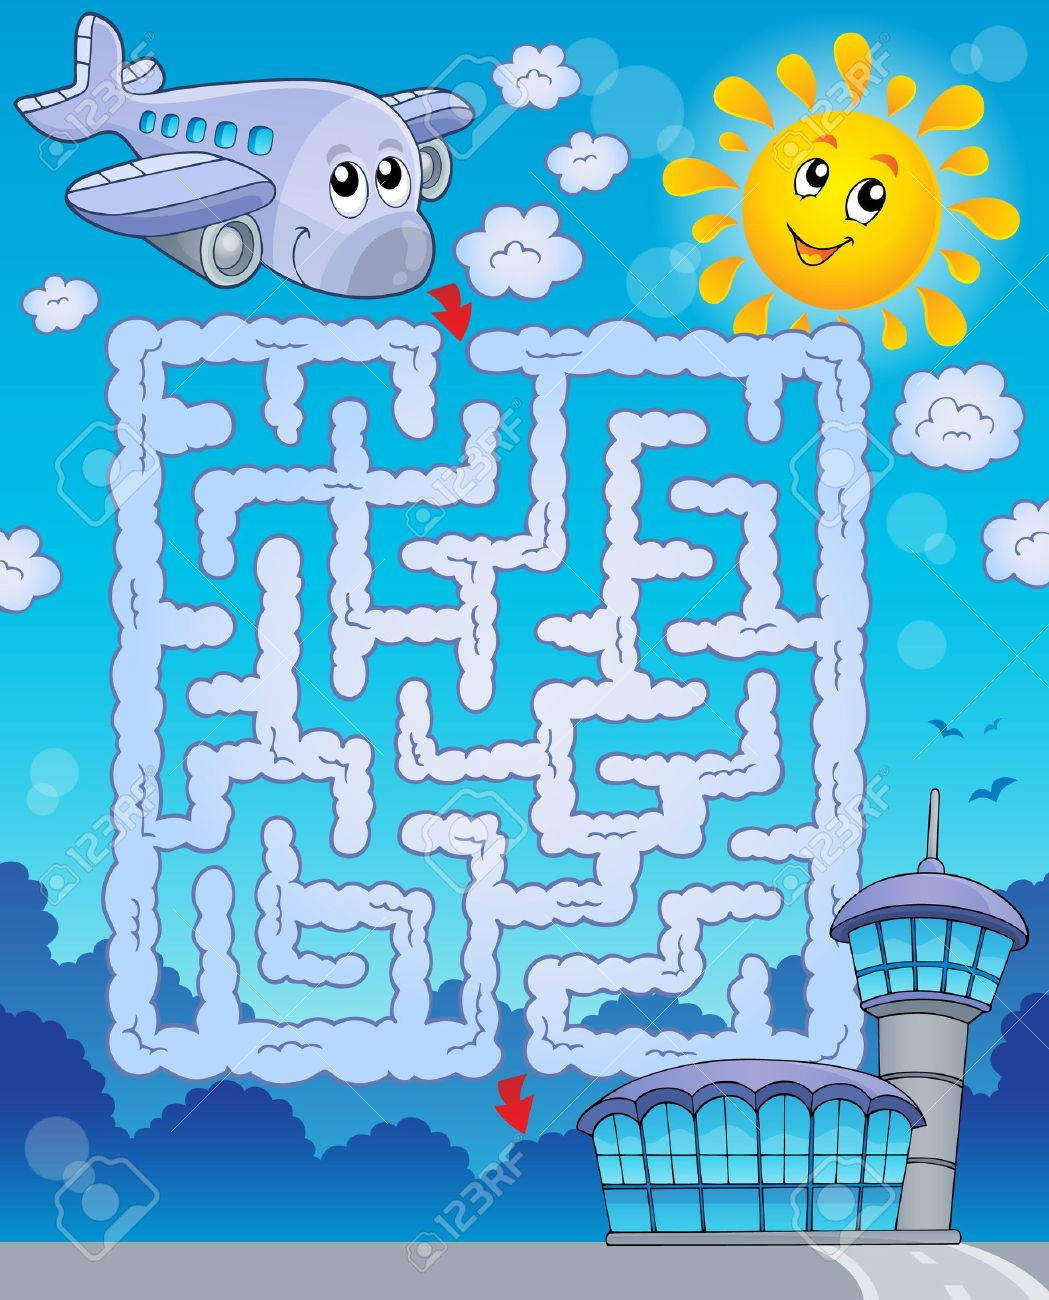 Maze 2 with airplane - eps10 vector illustration Stock Vector - 29907911